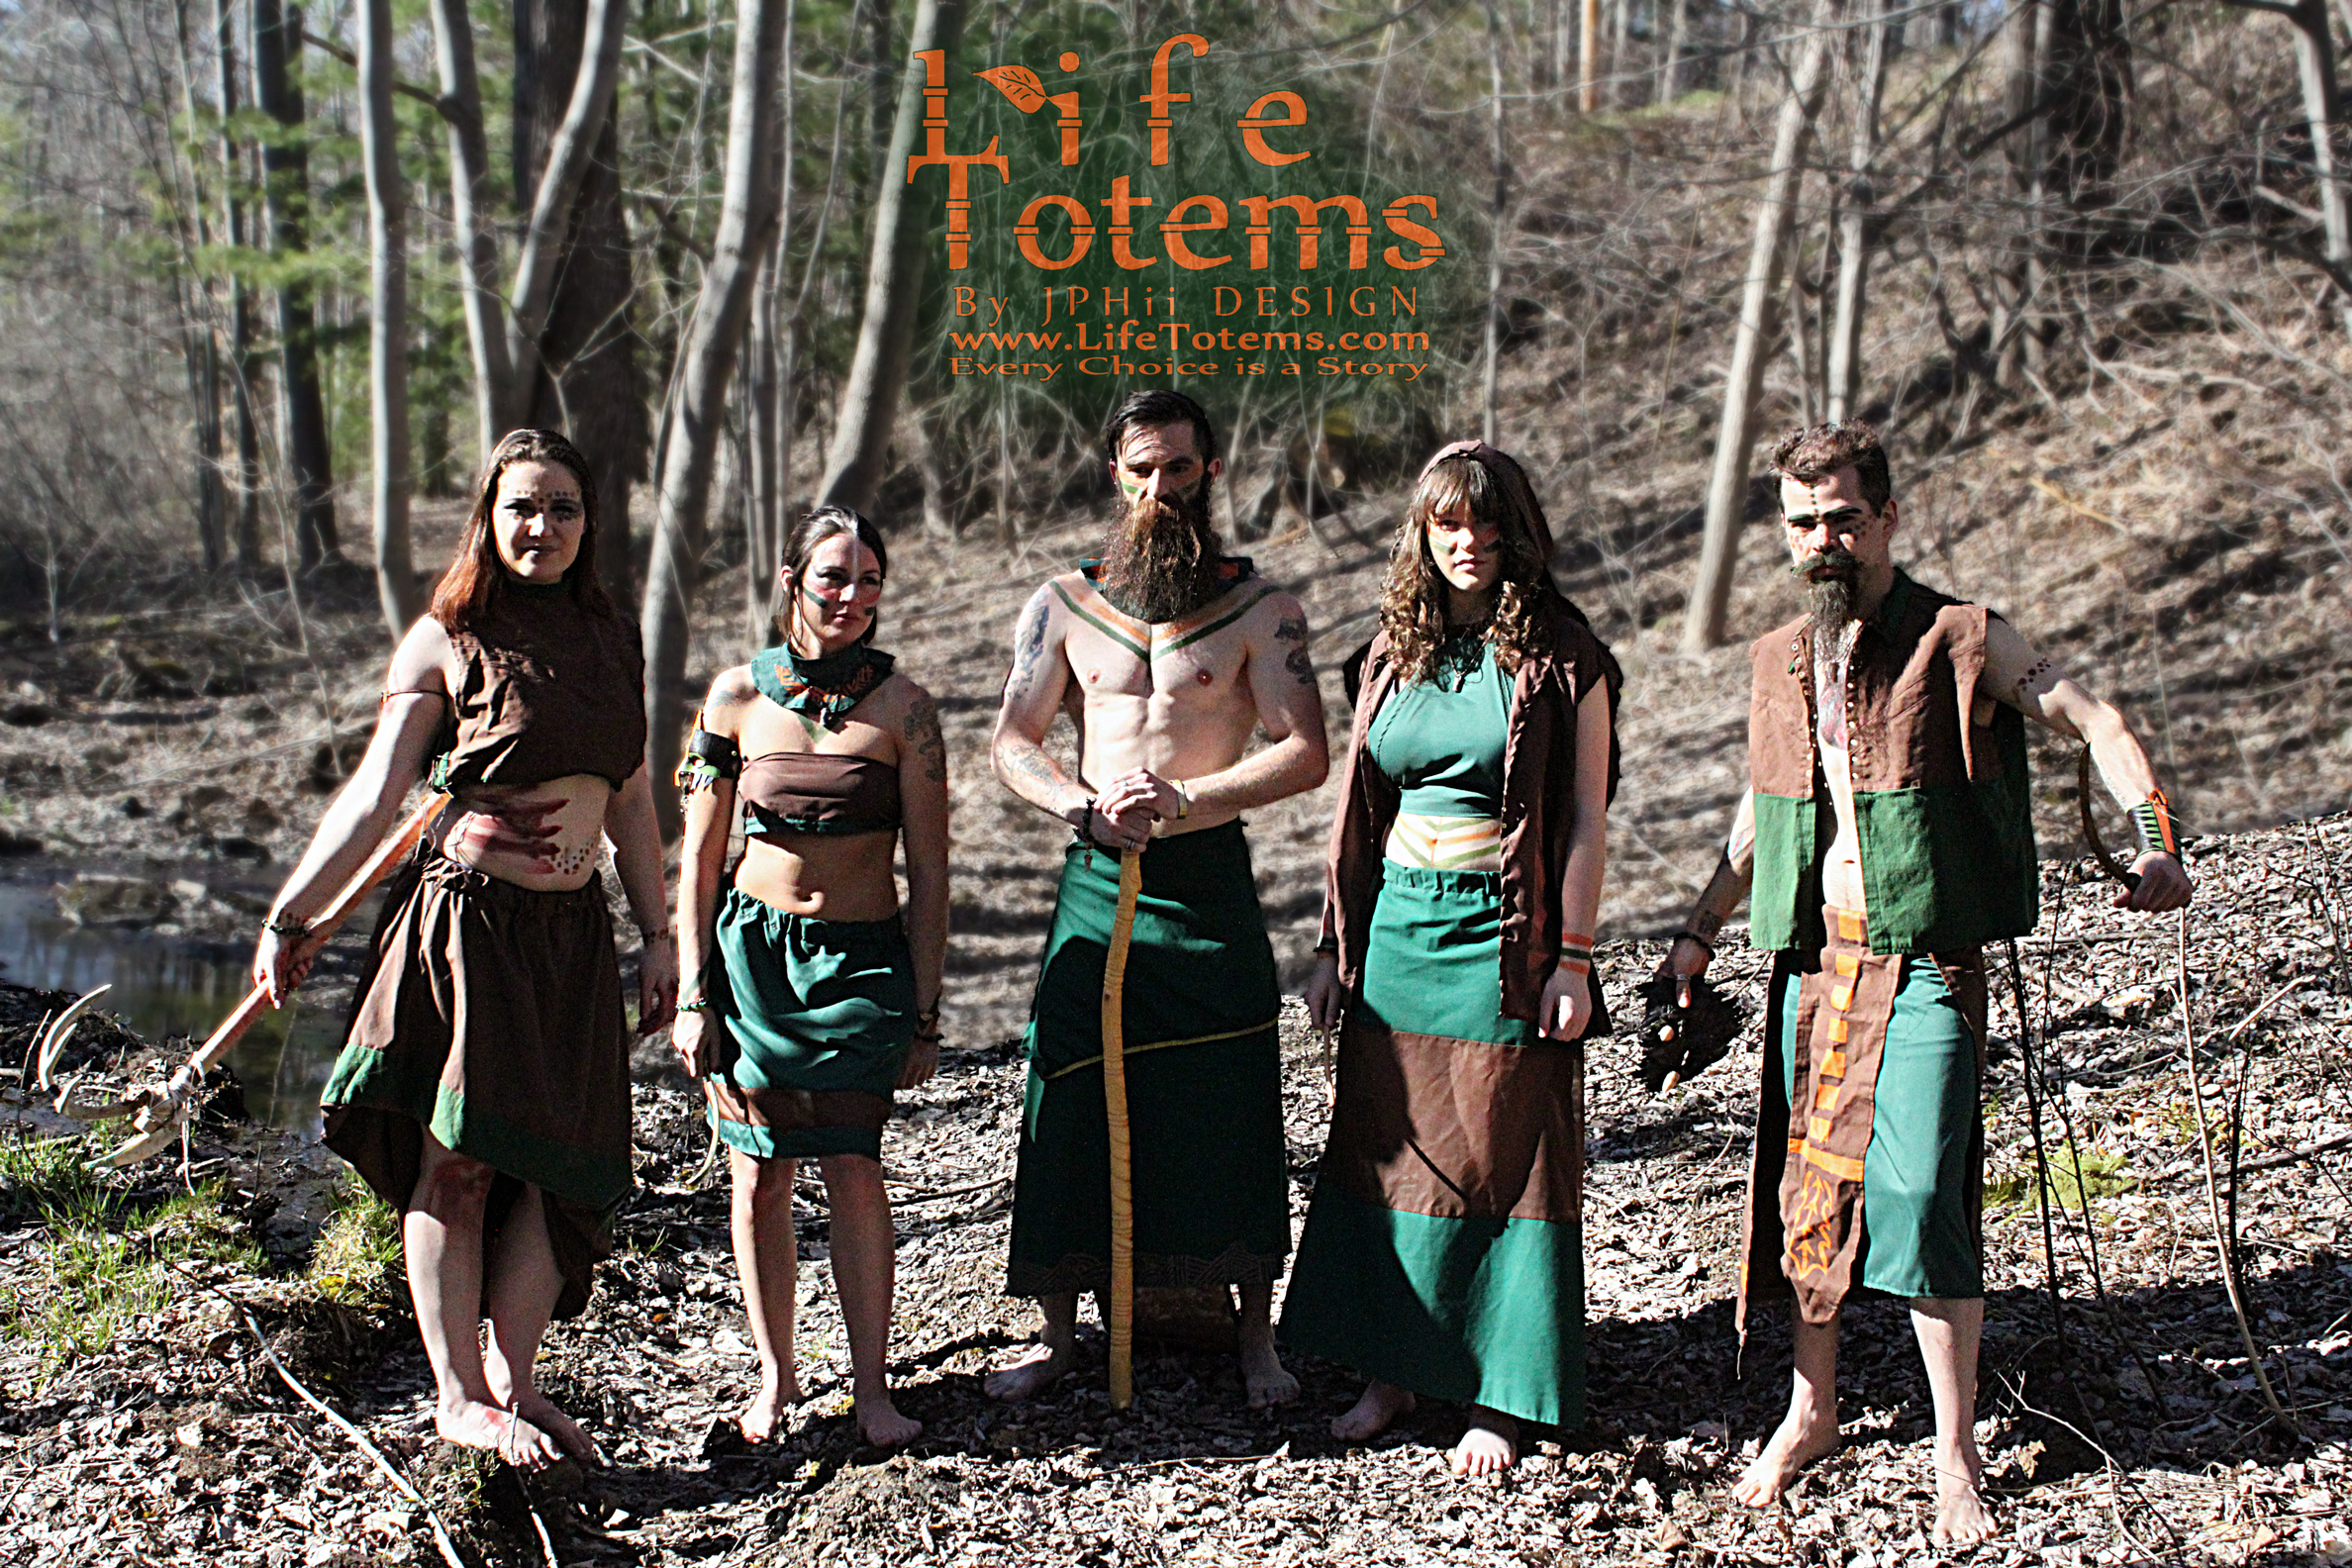 The Life Totems Tribe